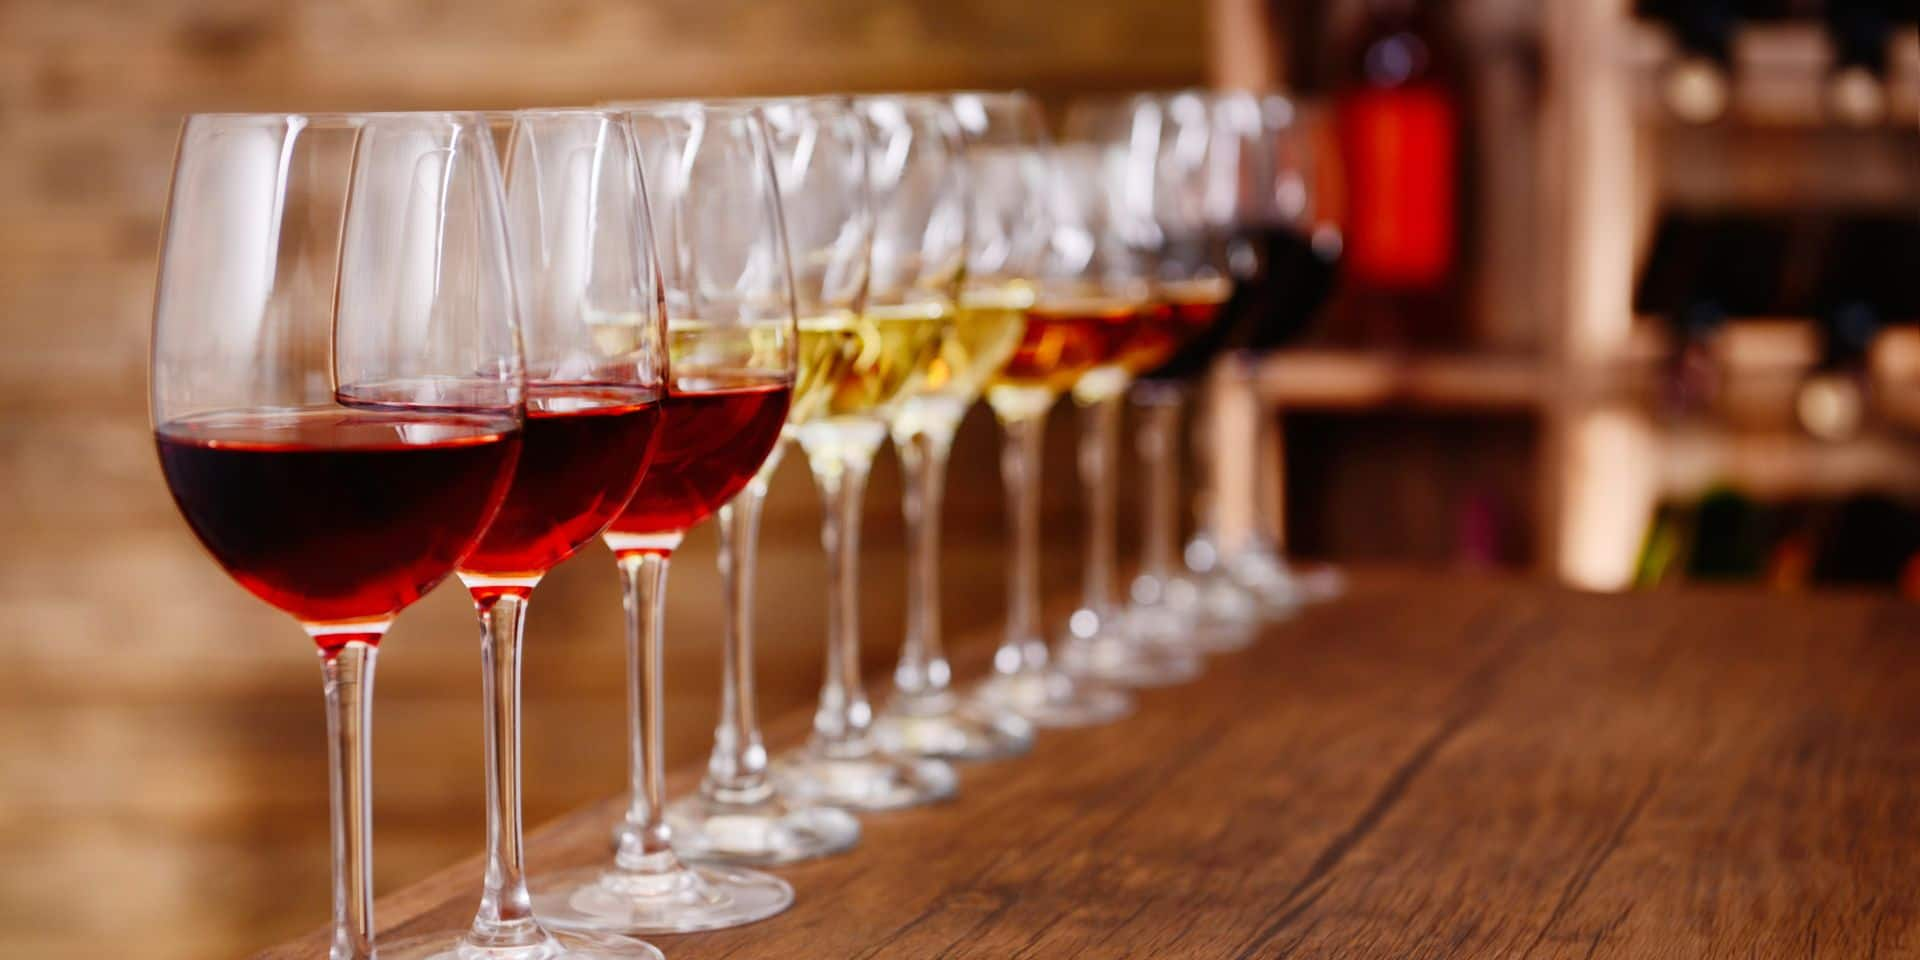 Many,Glasses,Of,Different,Wine,In,A,Row,On,Bar